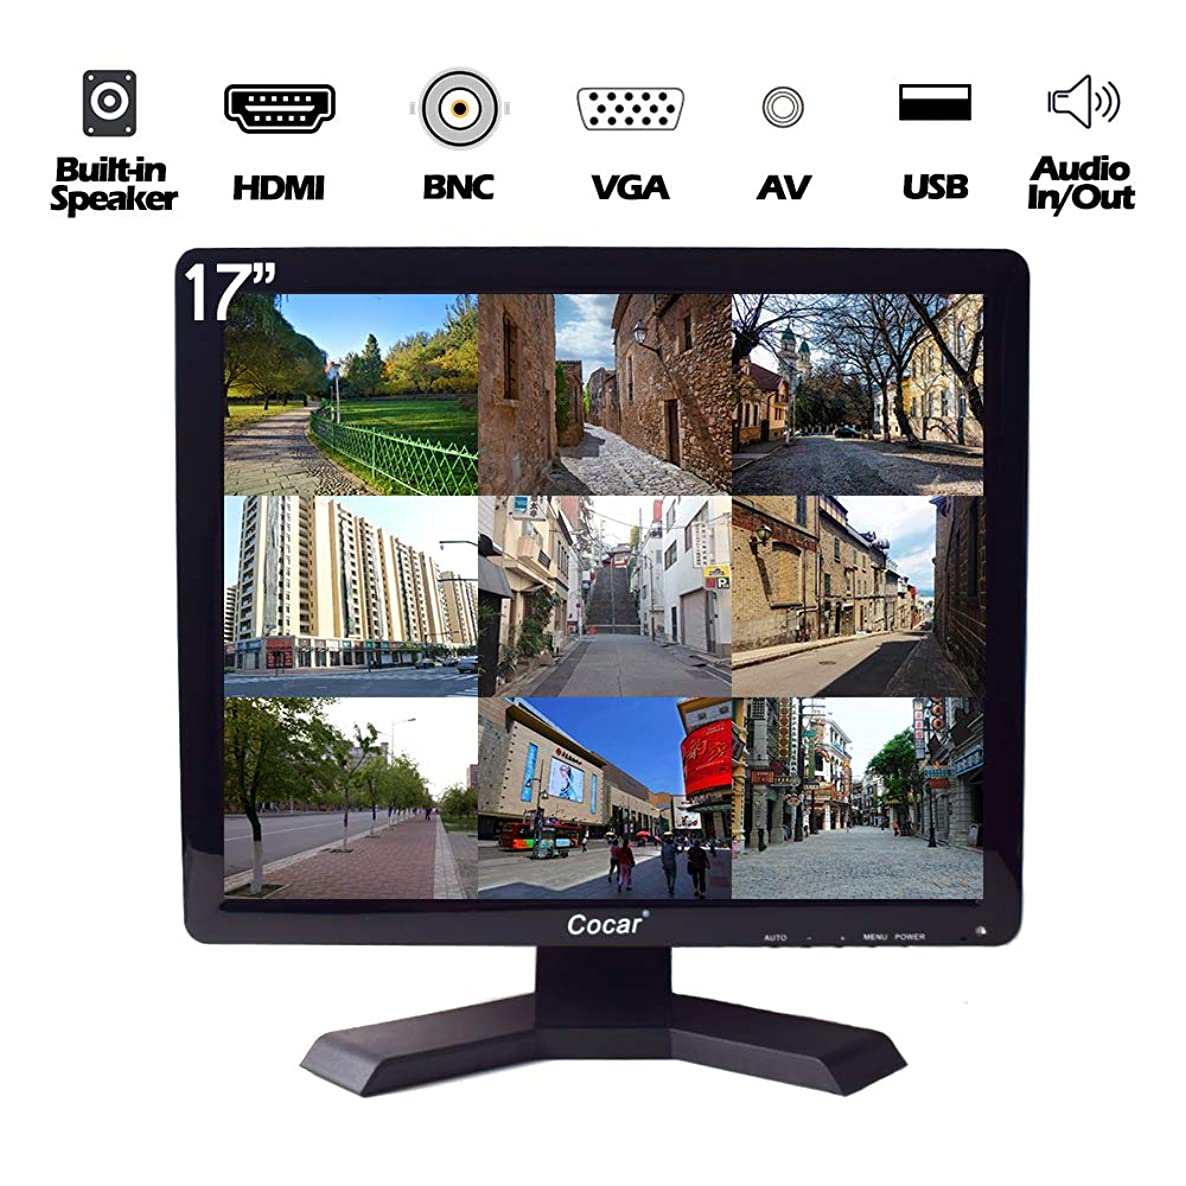 17 inch CCTV Monitor with VGA HDMI AV BNC Audio In/Out Ports, Built-in Speaker 4:3 HD Display (LED Backlight) LCD Security Screen with USB Drive Player for Surveillance Camera STB 1280x1024 Resolution